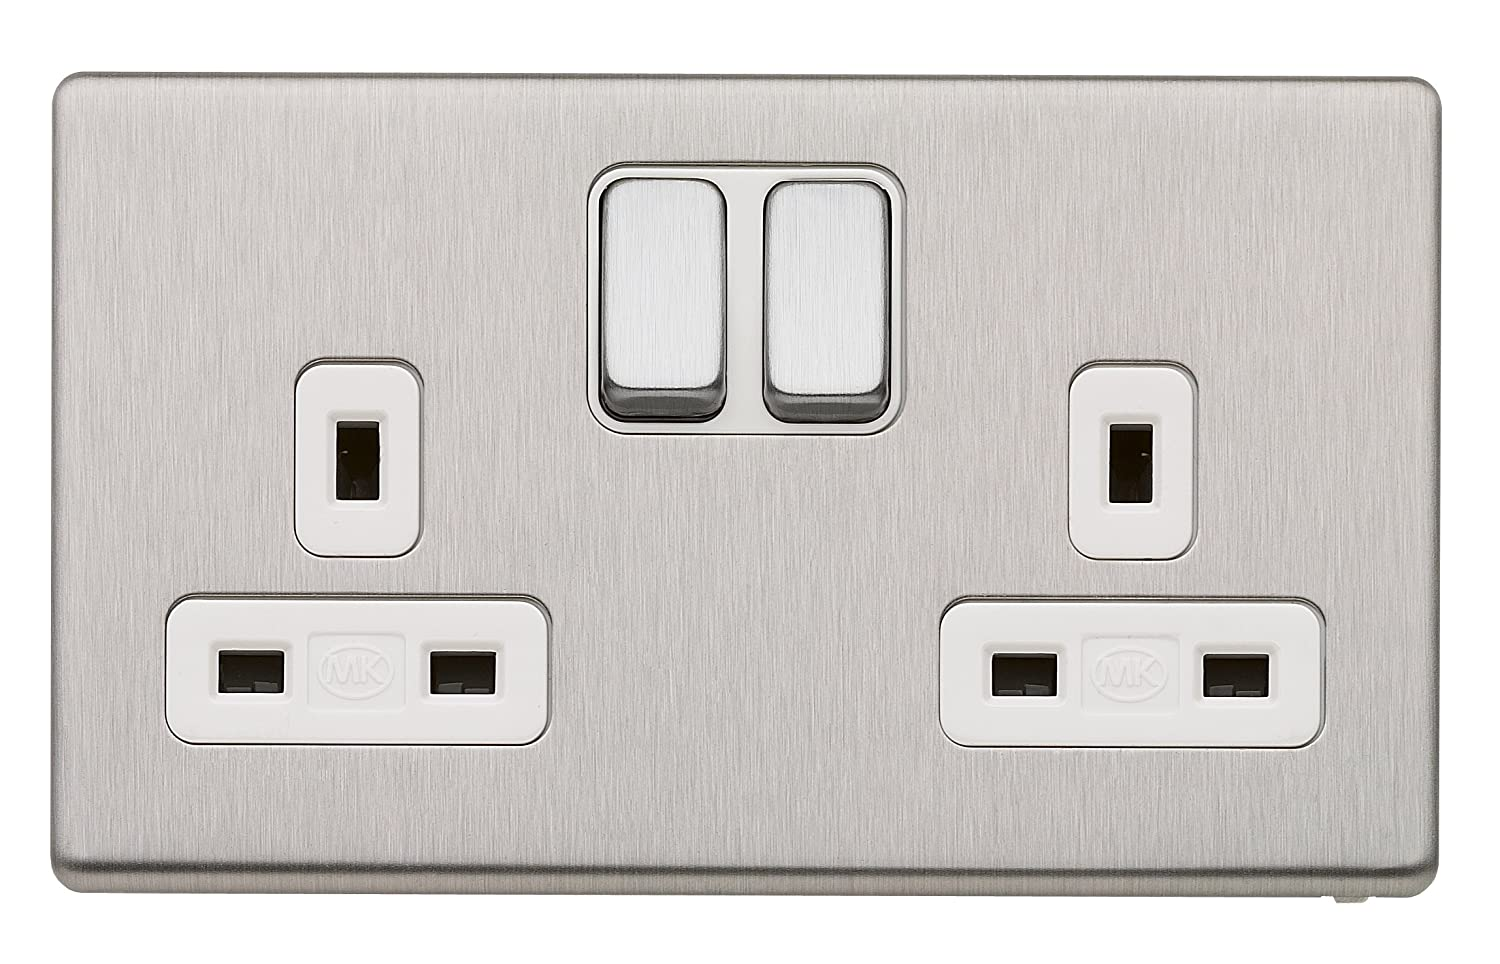 MK Aspect K24347 BSS B 13A Dual Earth Double Switched Socket 2-Gang ...